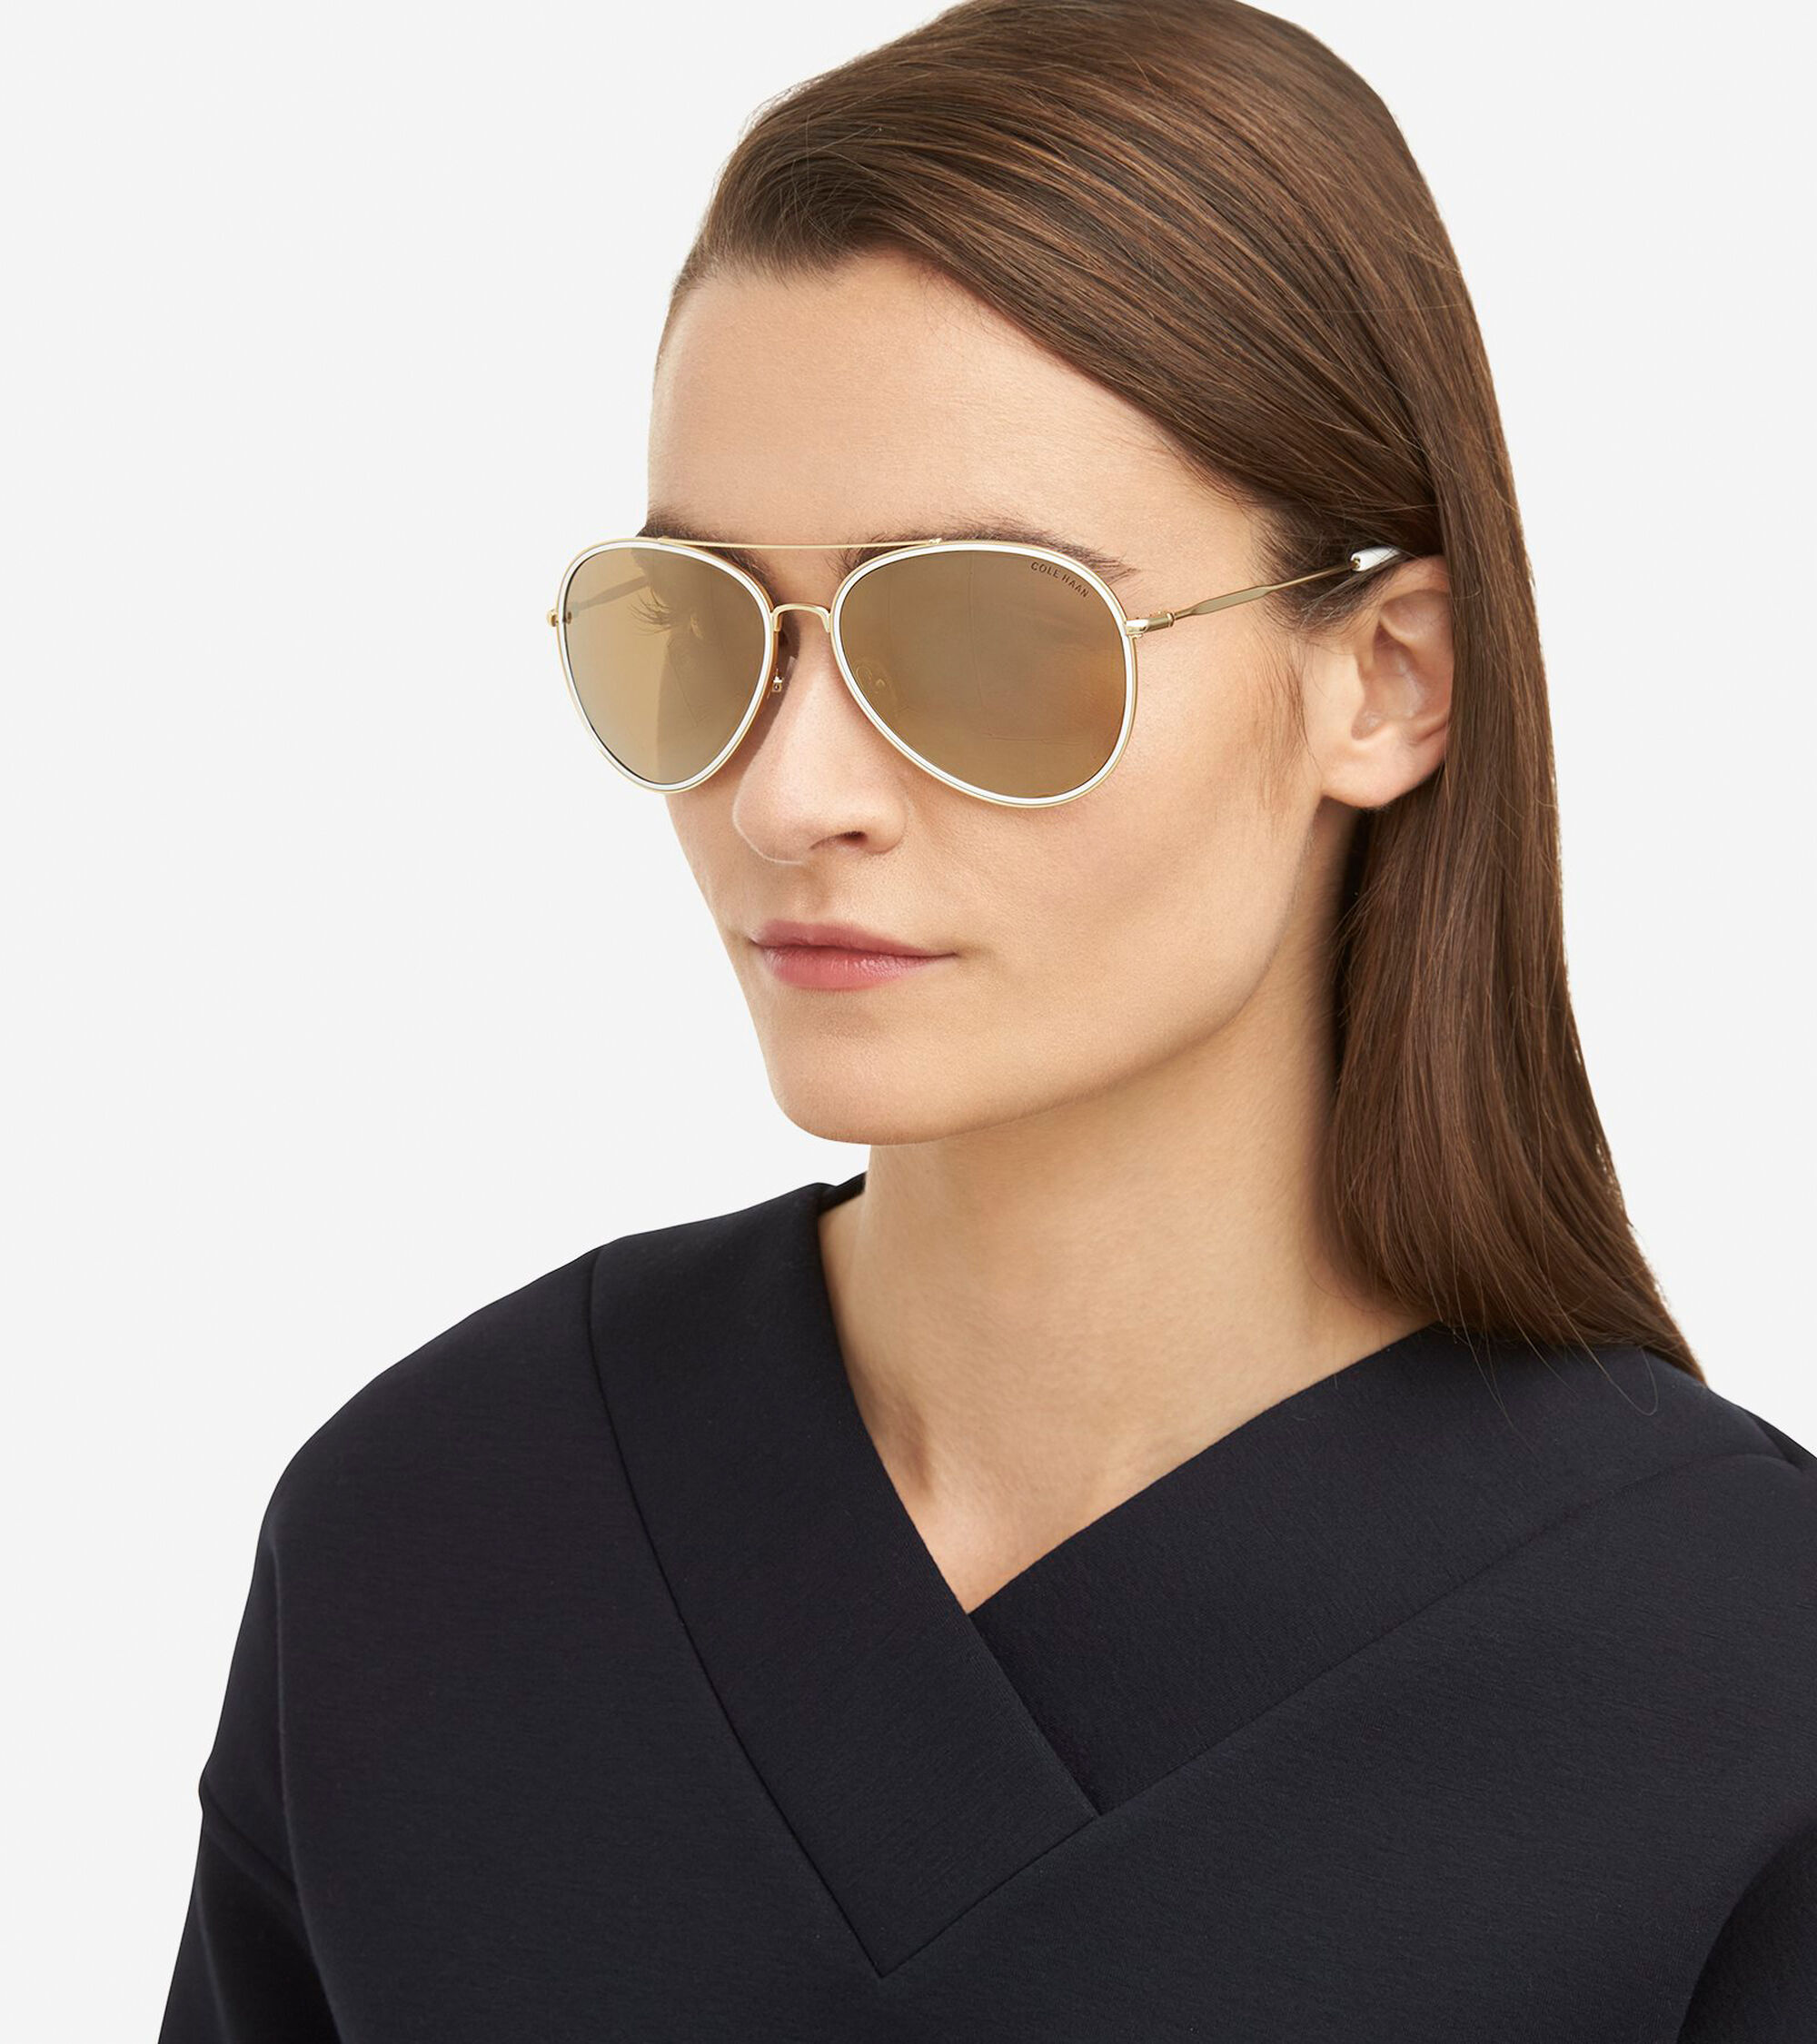 b0289e5527 Grand Aviator Sunglasses  Grand Aviator Sunglasses  Grand Aviator Sunglasses.   COLEHAAN